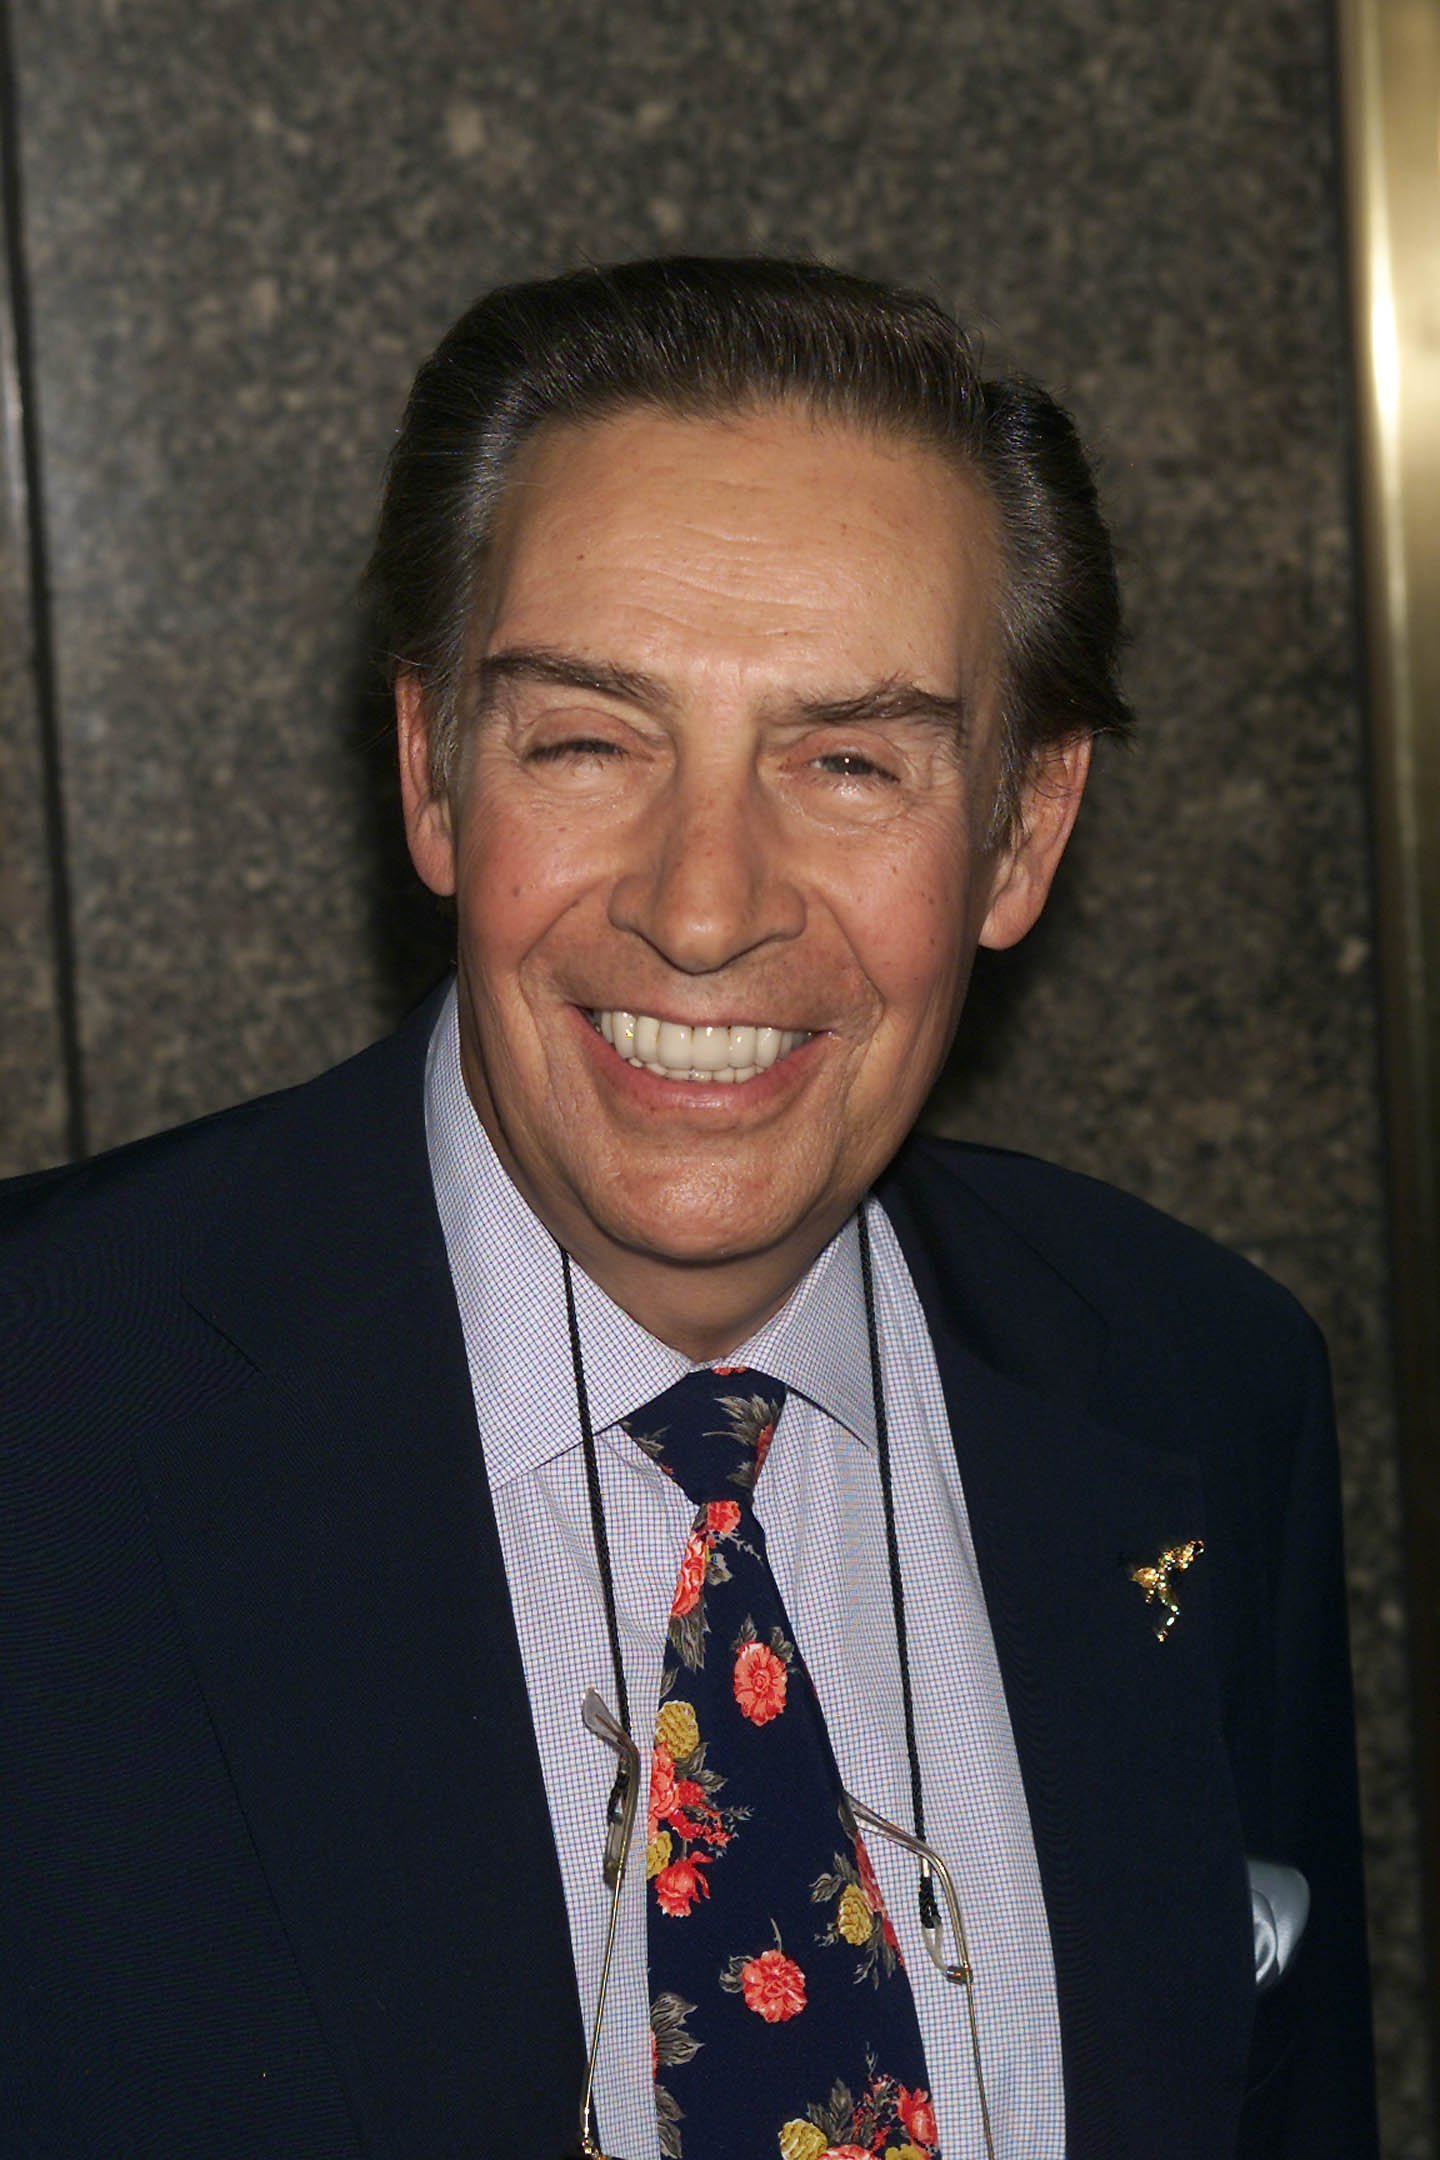 Jerry Orbach. I Image: Getty Images.